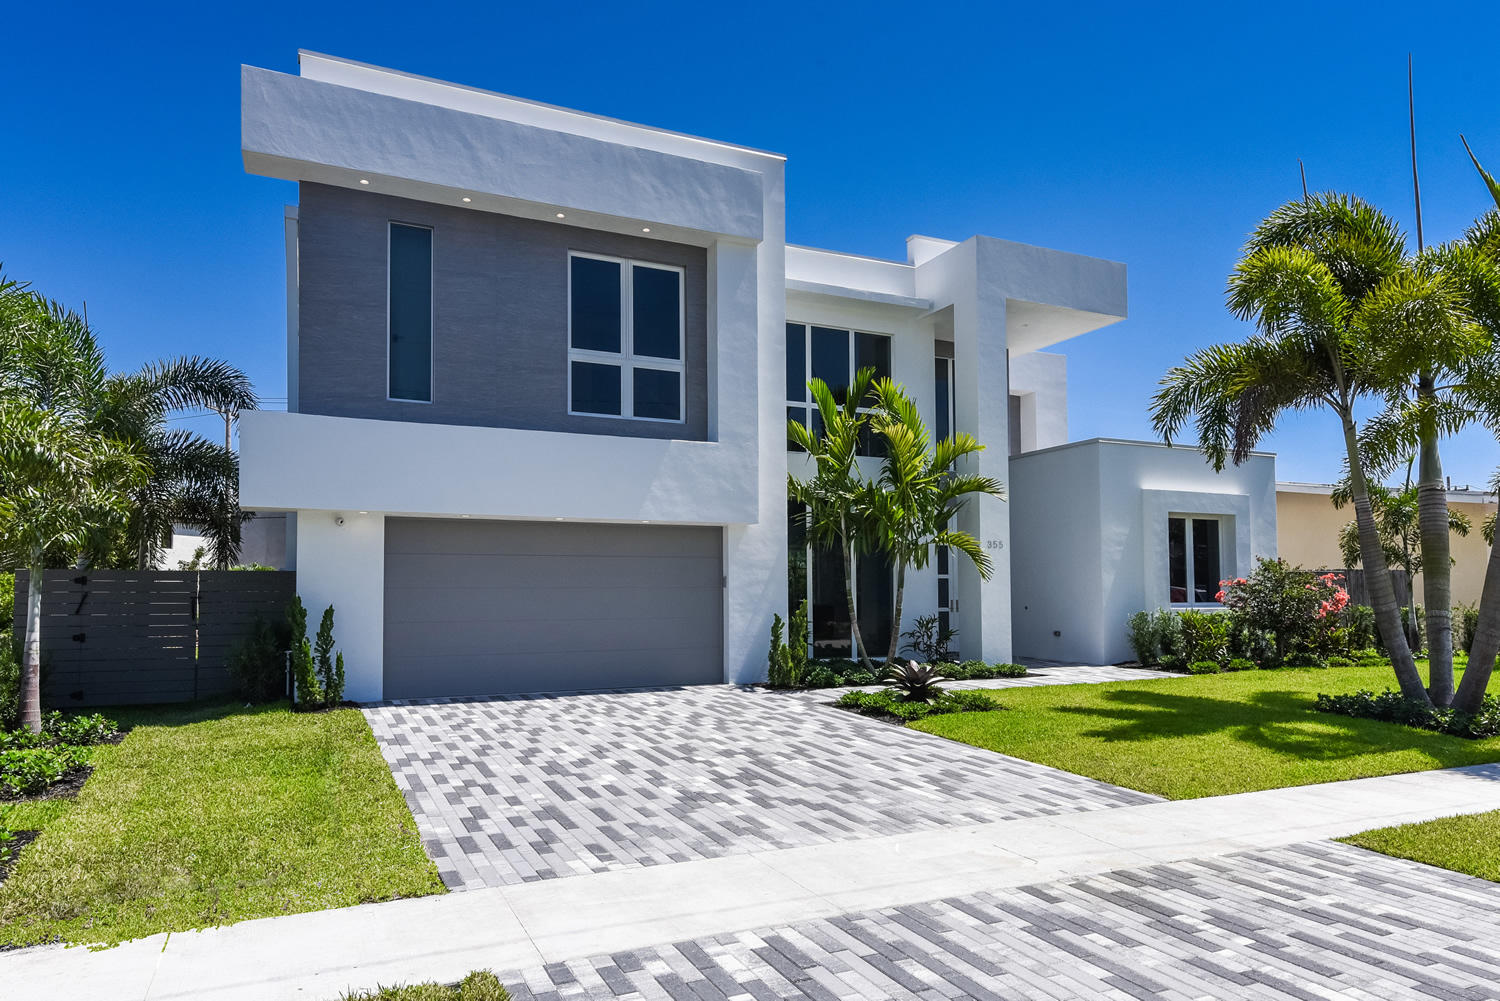 Home for sale in Boca Villas (mizner Park) Boca Raton Florida